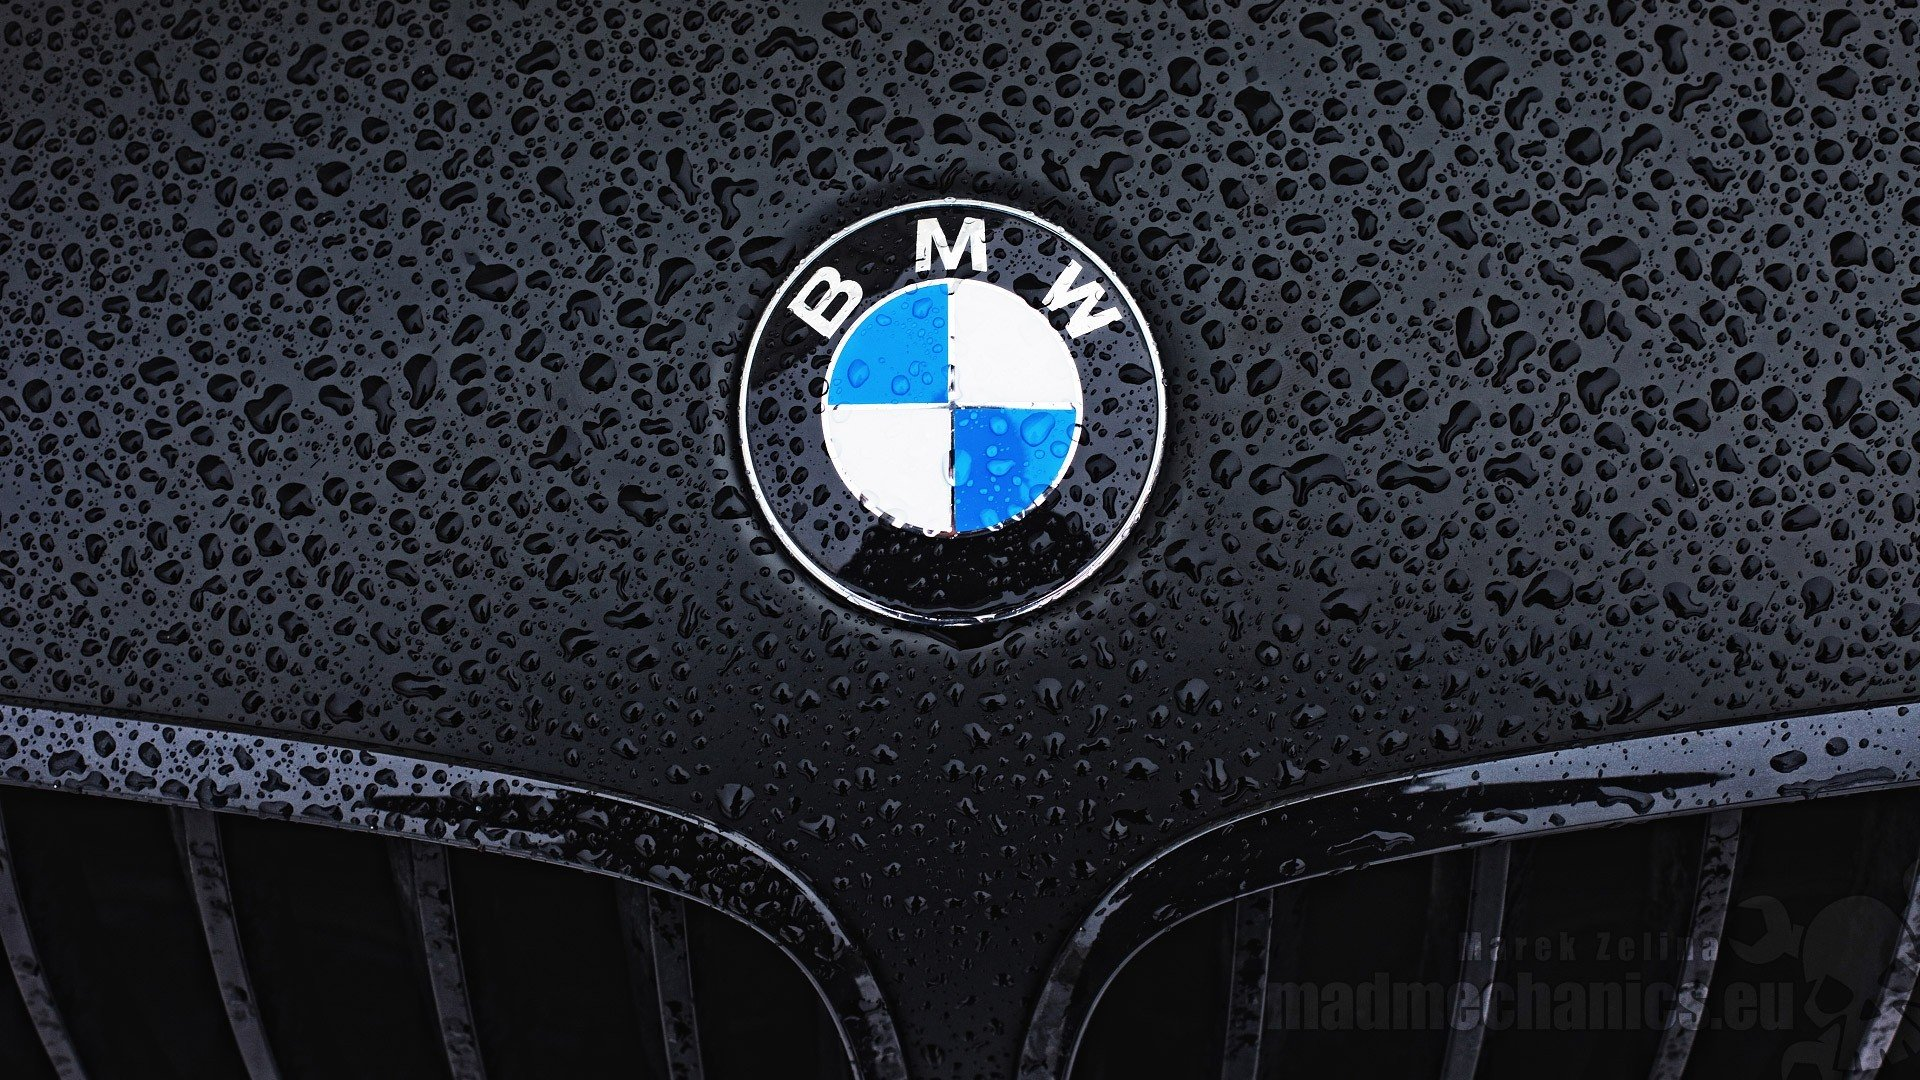 Bmw Logo Hd Wallpaper Wallpapersafari